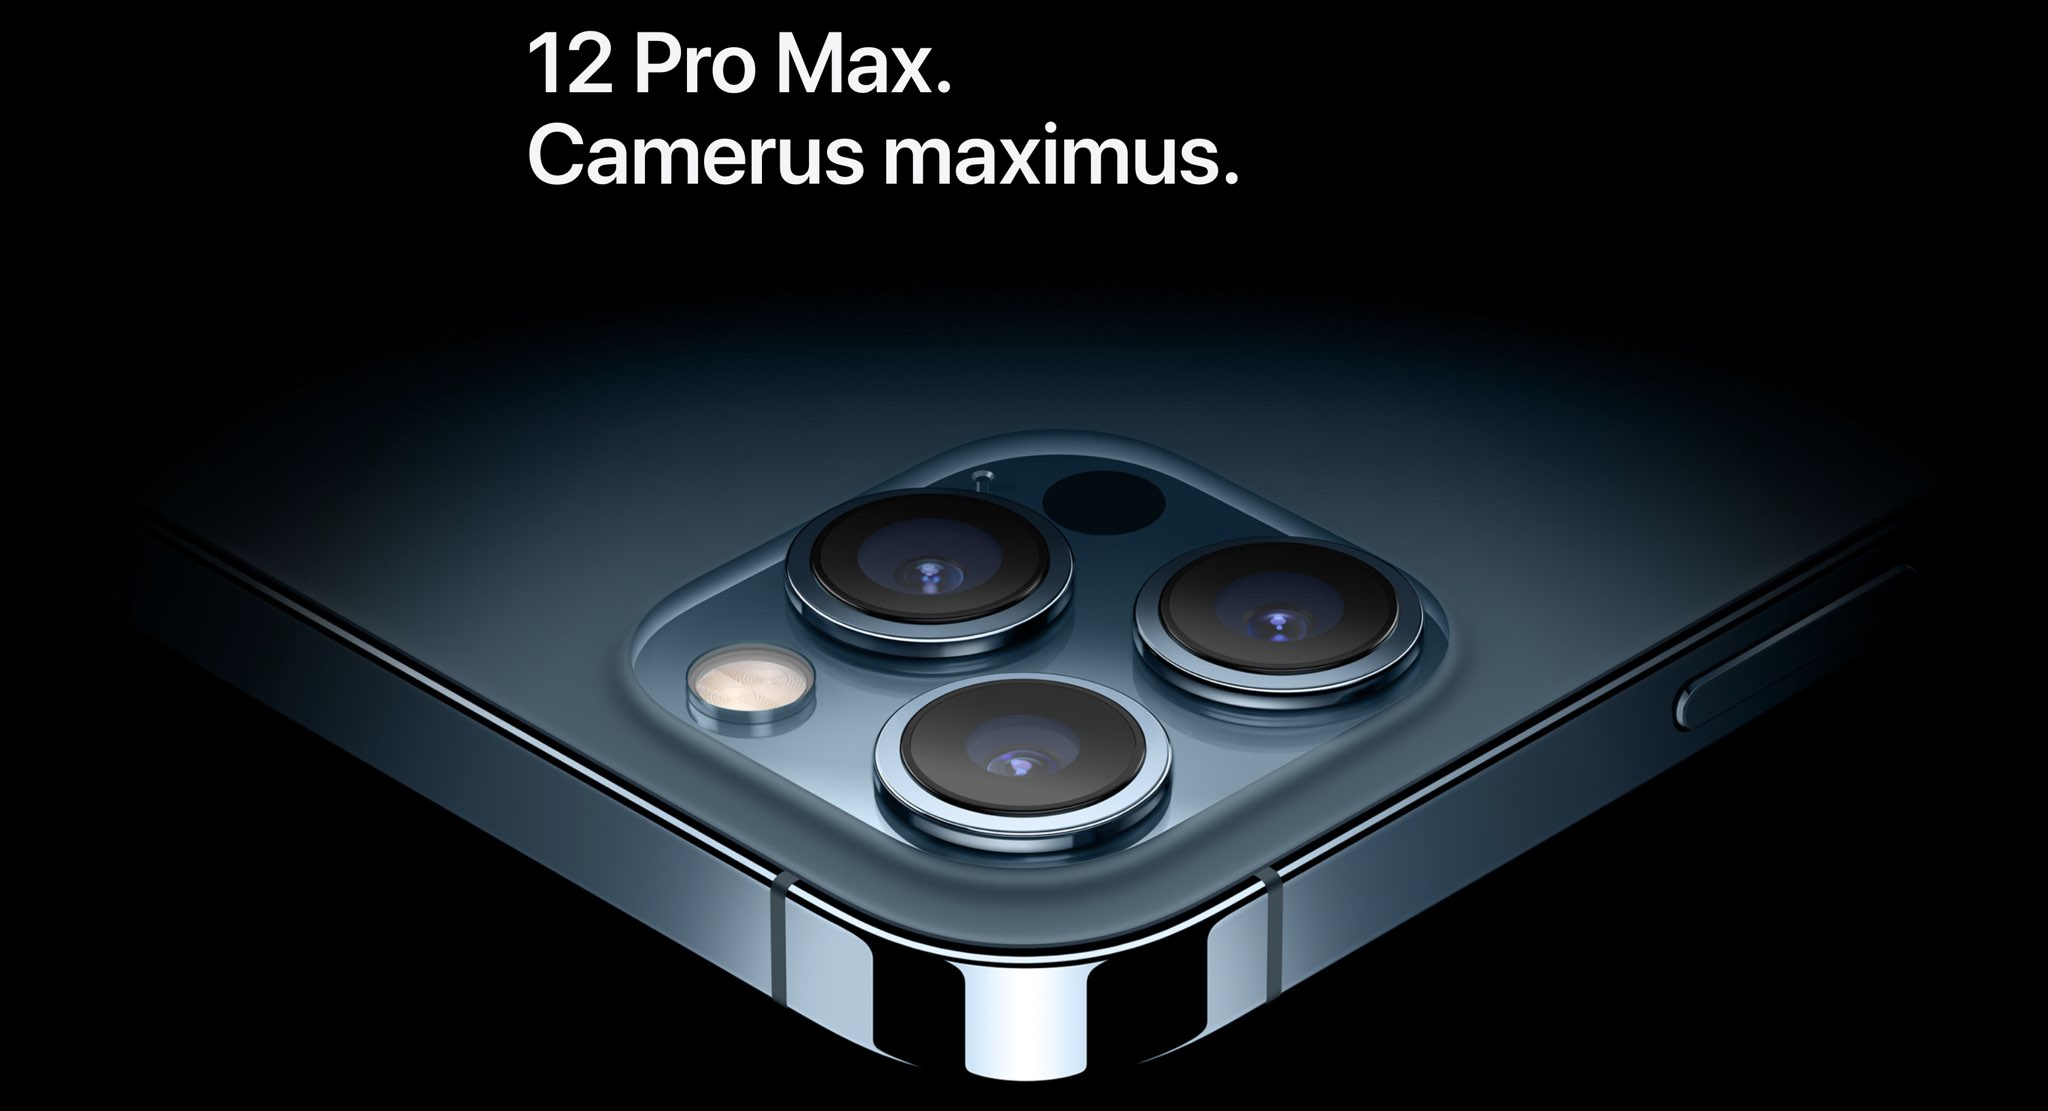 An Apple webpage capture promoting the iPhone 12 Pro Max camera features.